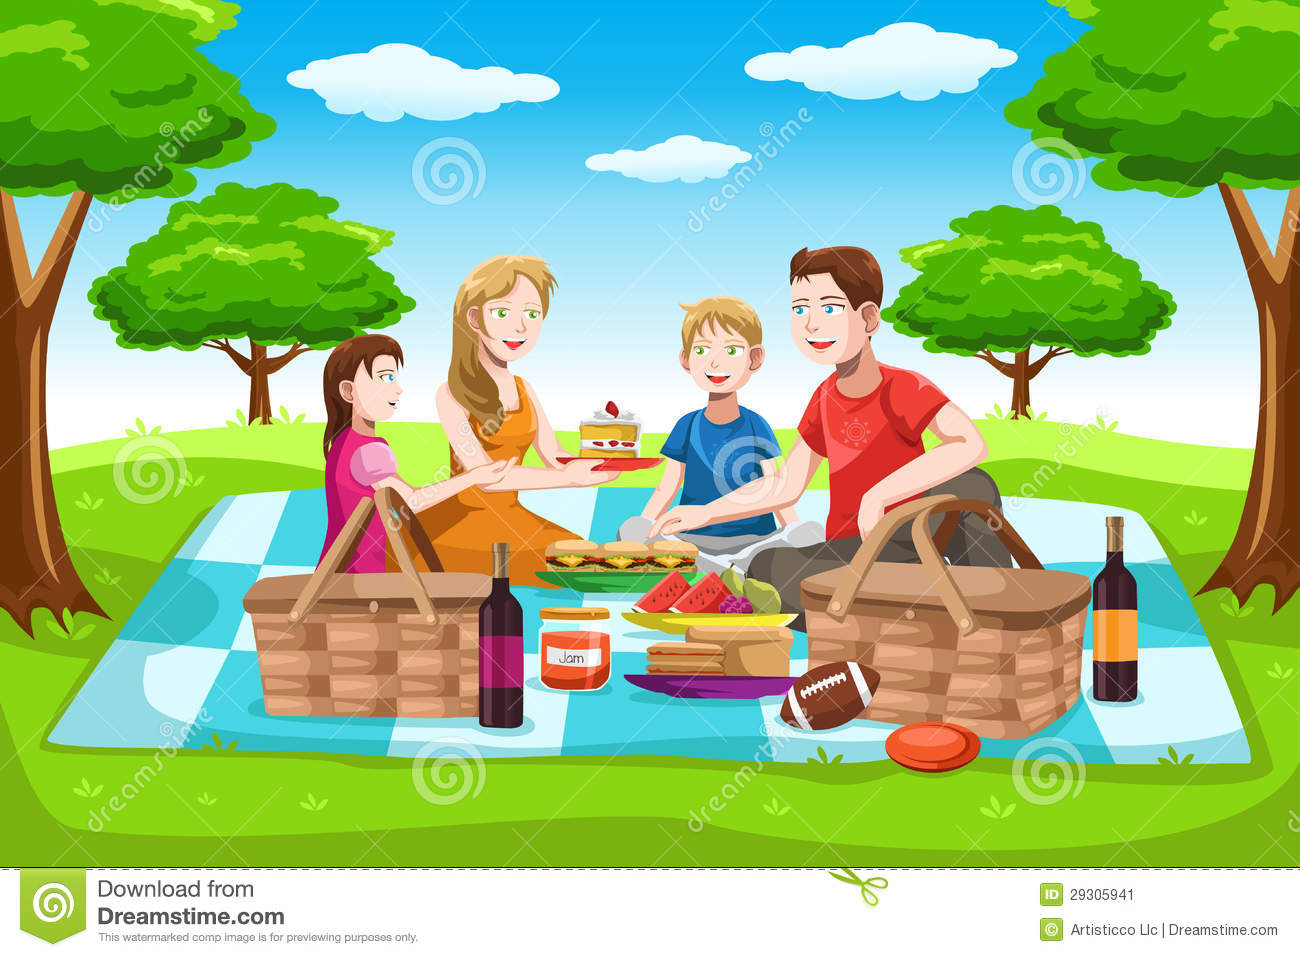 vector illustration of a happy family having a picnic in the park.